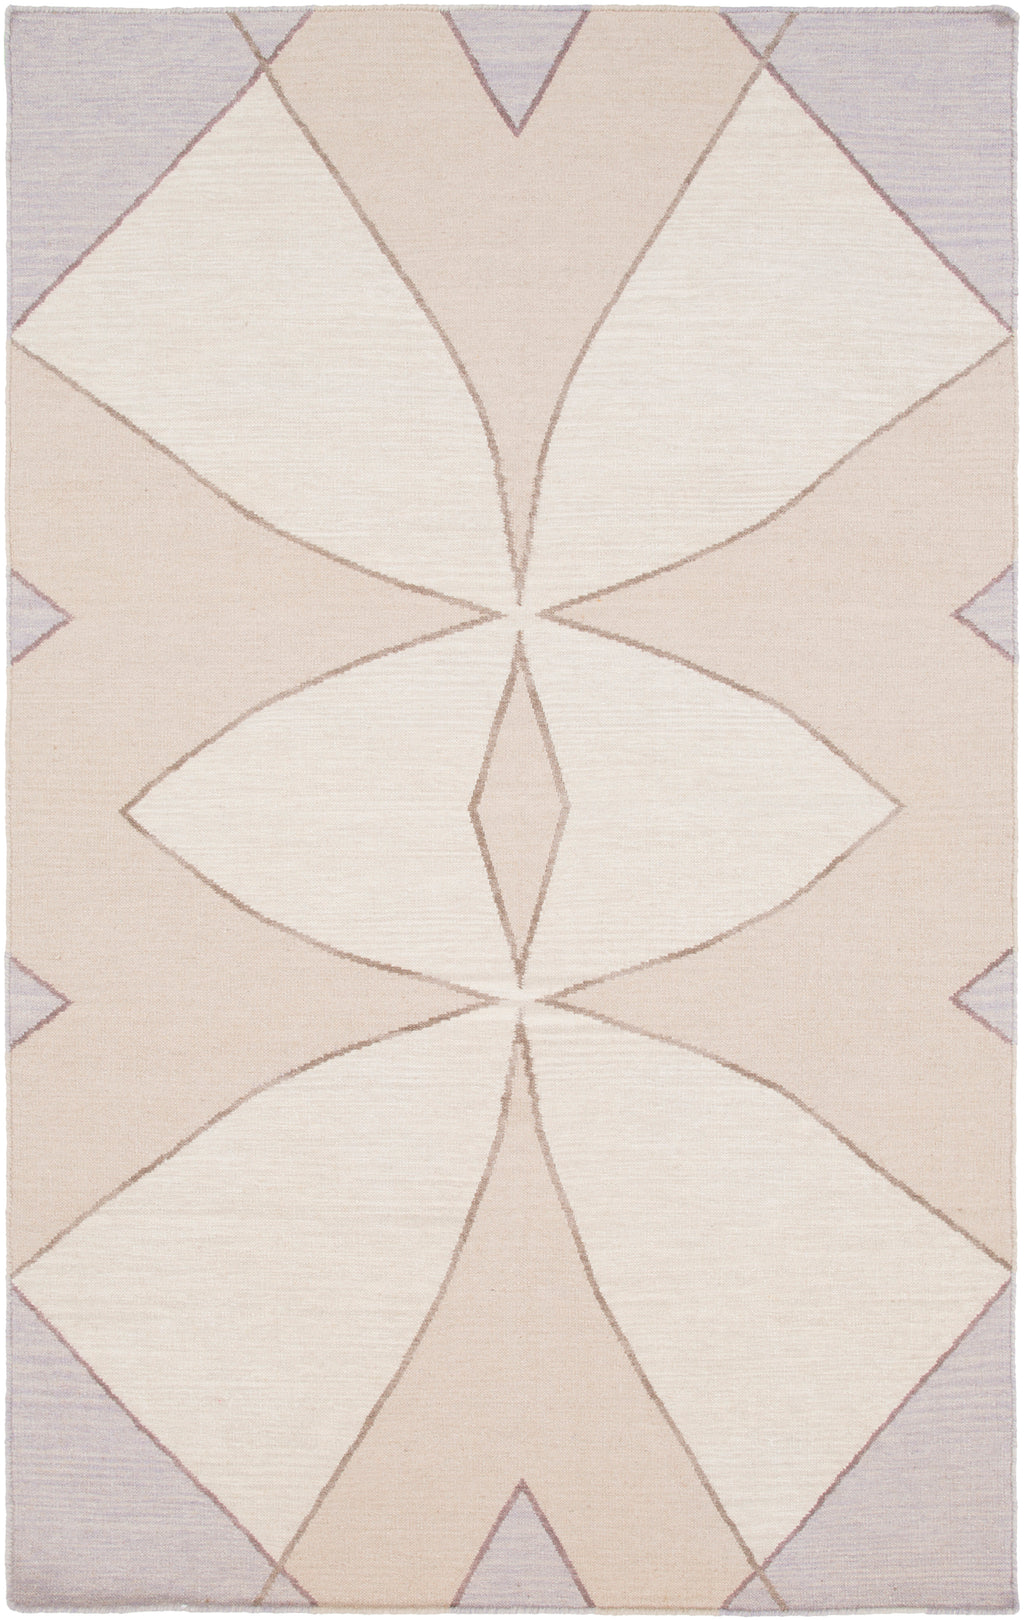 Surya Taurus One TSO1000 Brown/Neutral Modern Area Rug